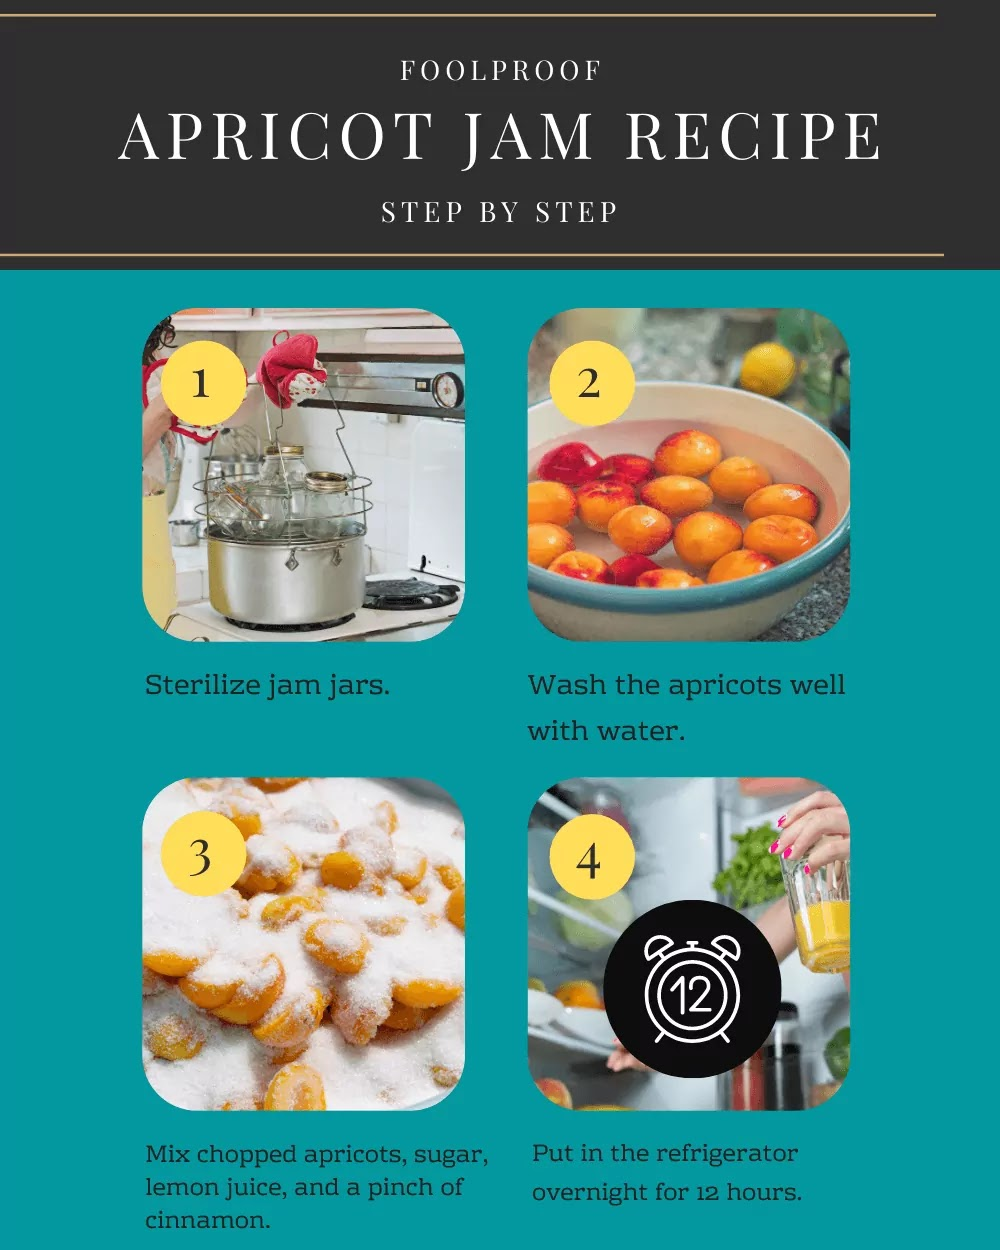 The first step of preparing apricot jam